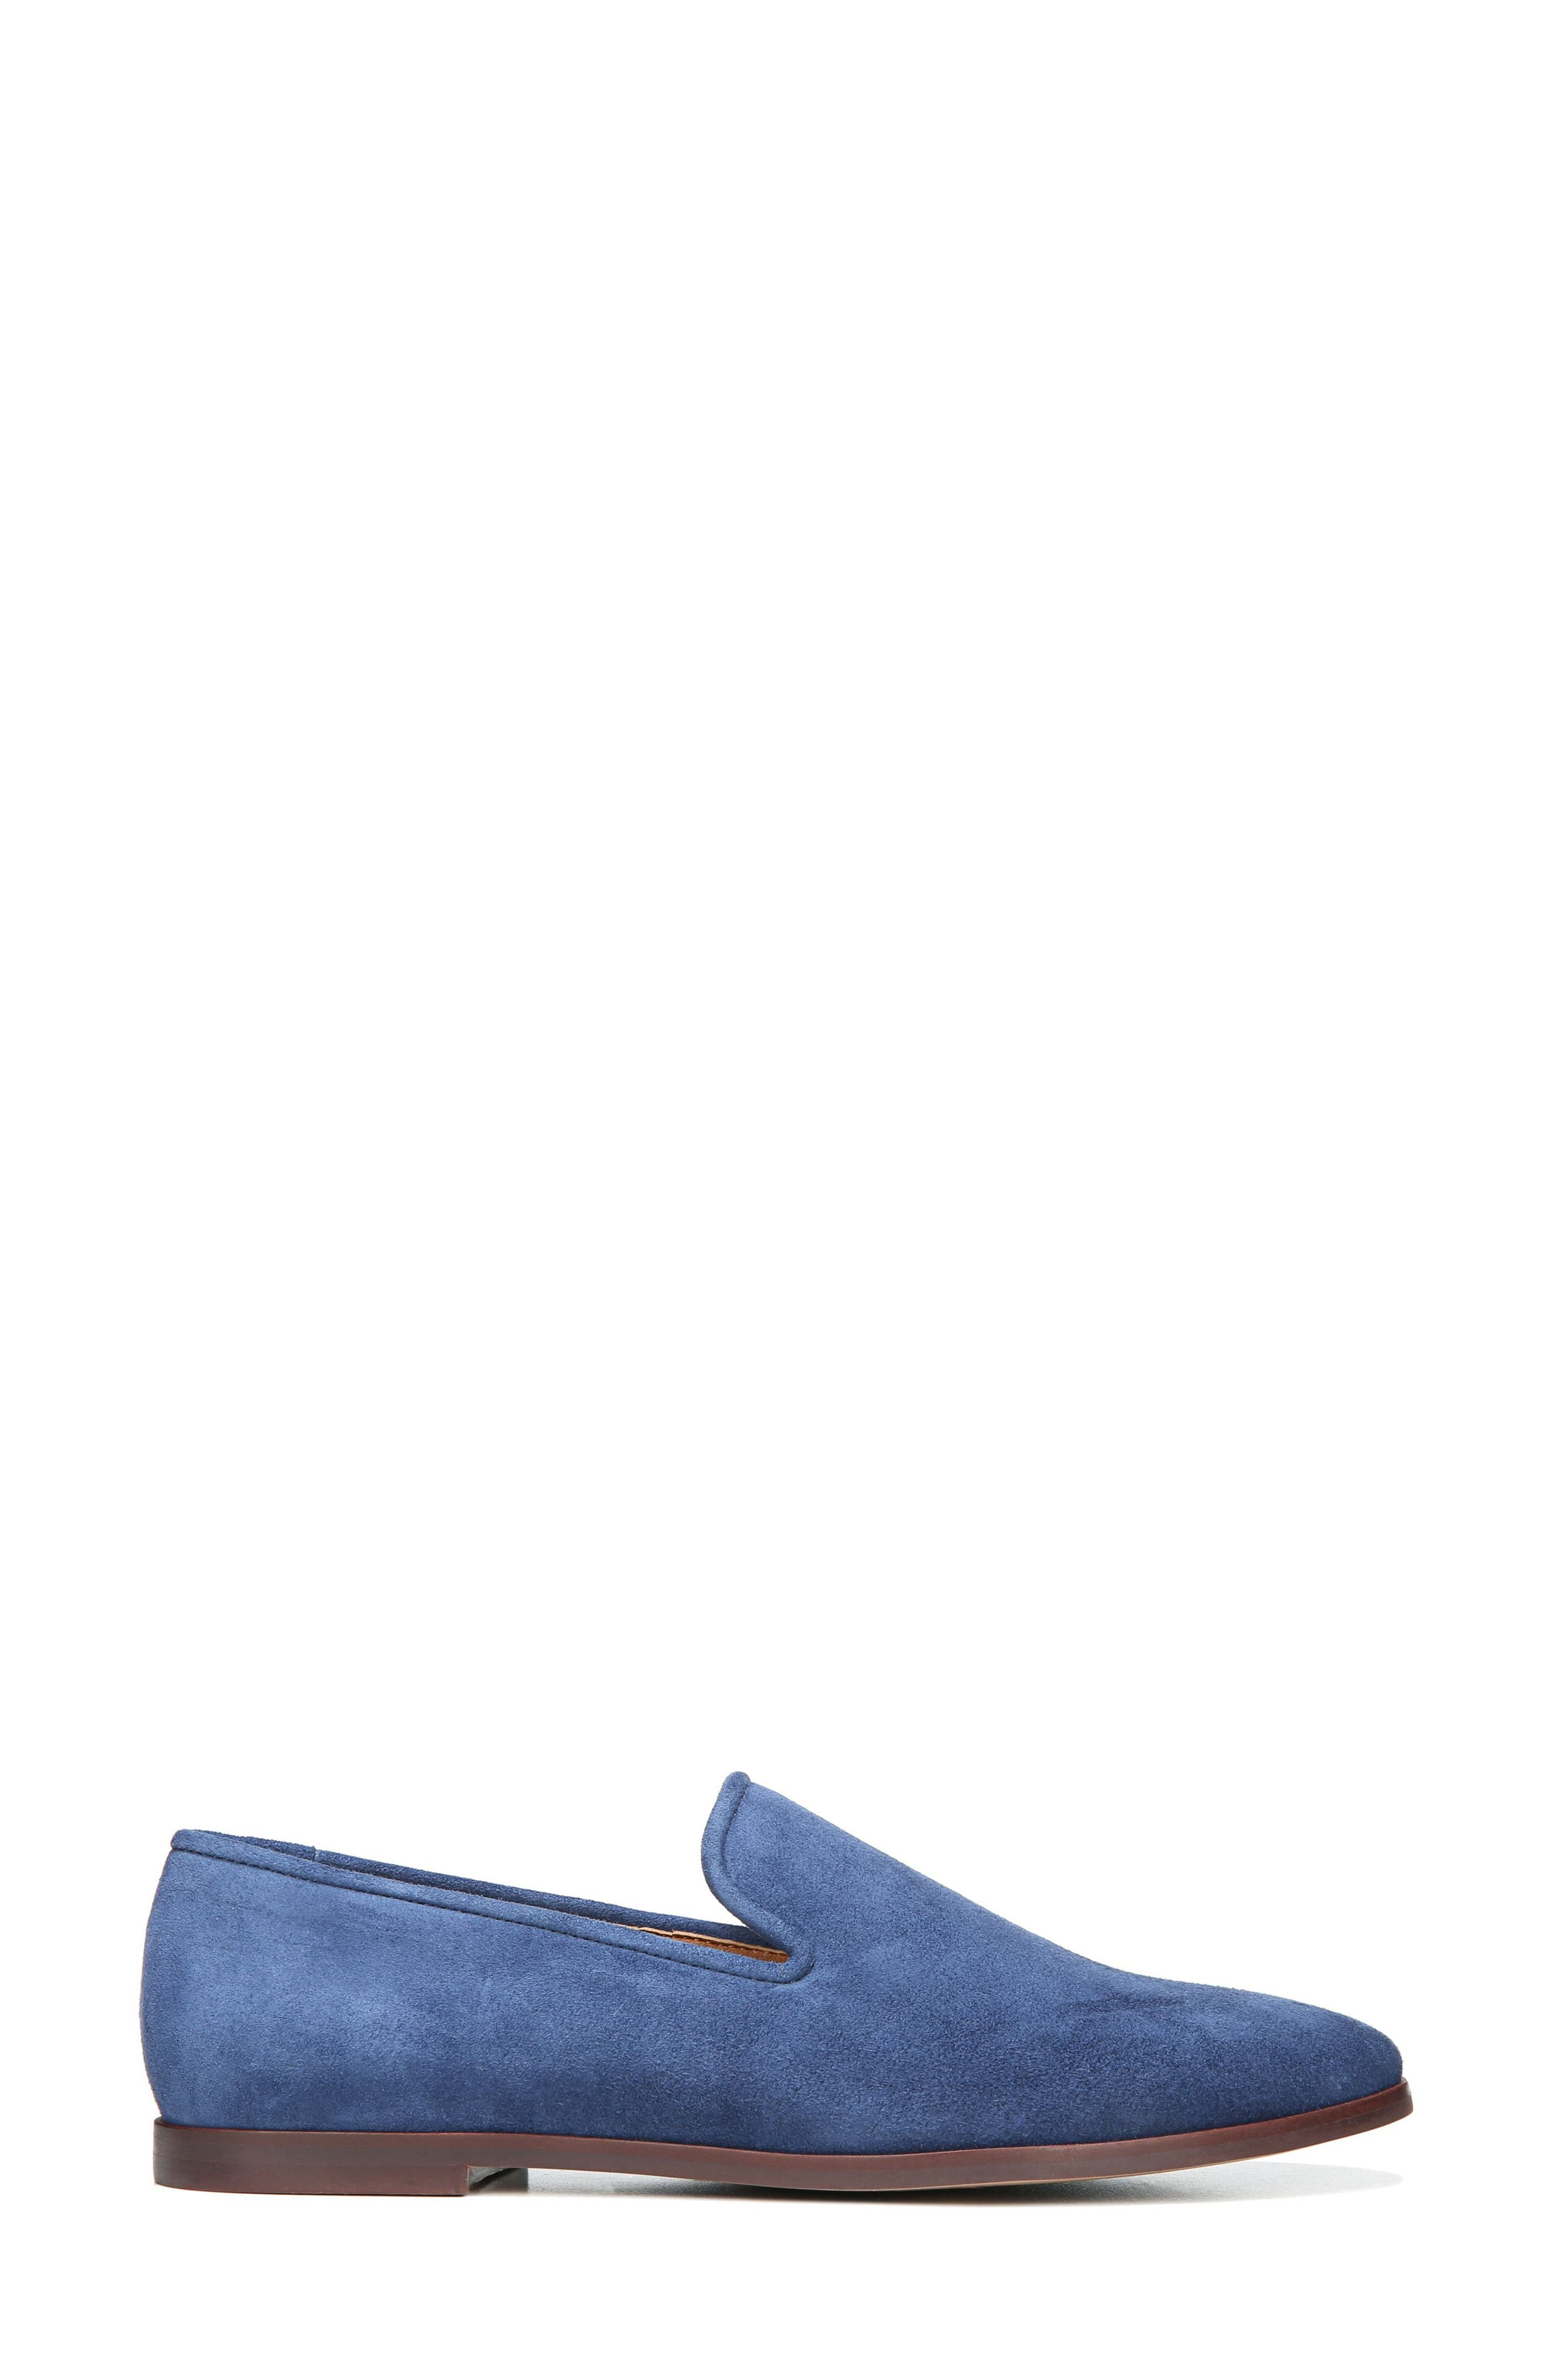 Ayers Loafer Flat,                             Alternate thumbnail 24, color,